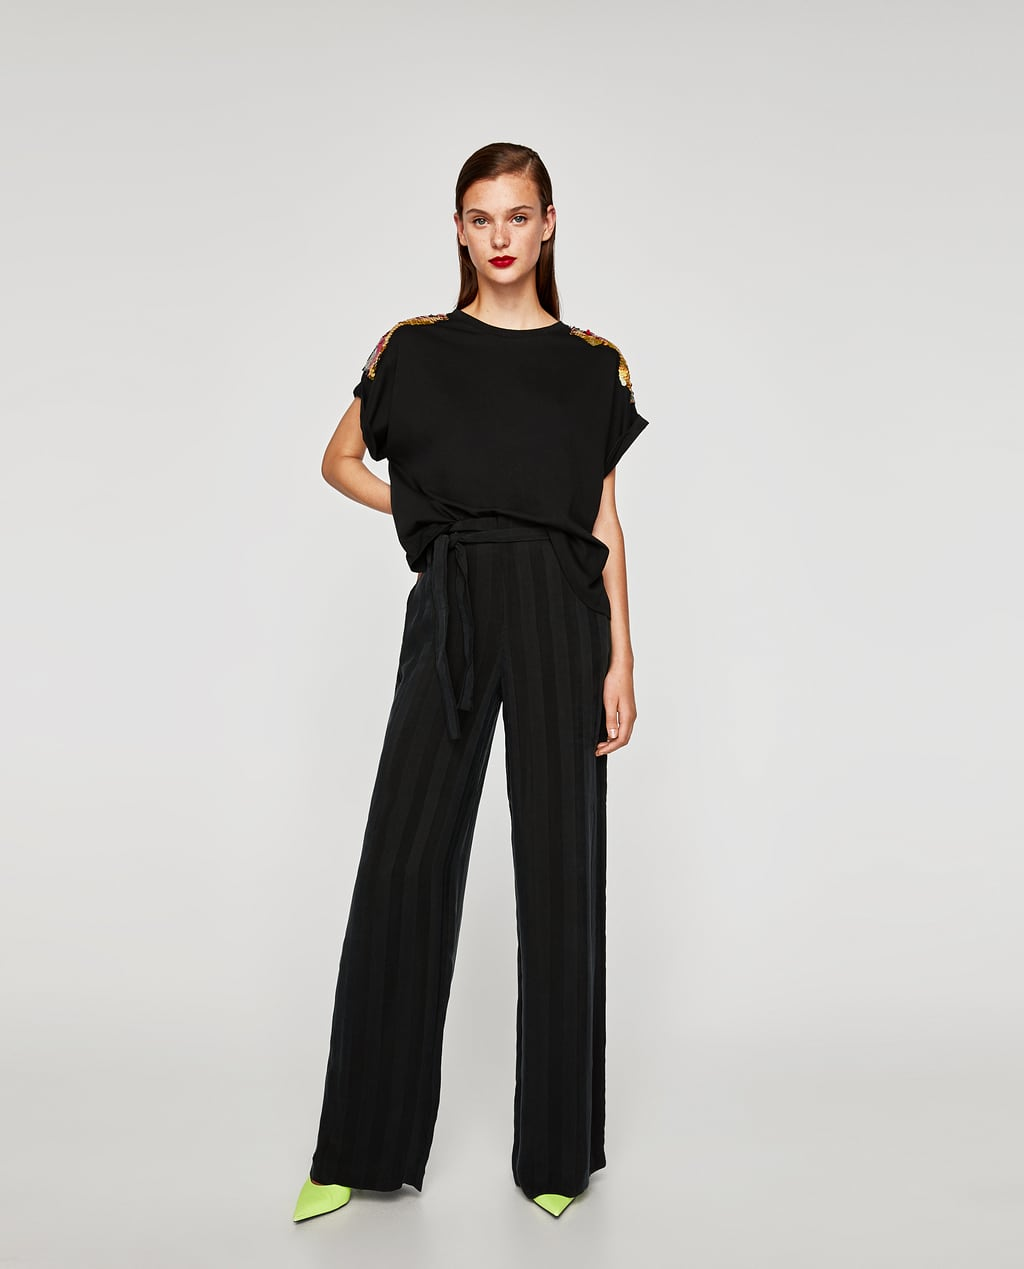 Zara black t shirt india - Image 1 Of T Shirt With Sequinned Shoulders From Zara